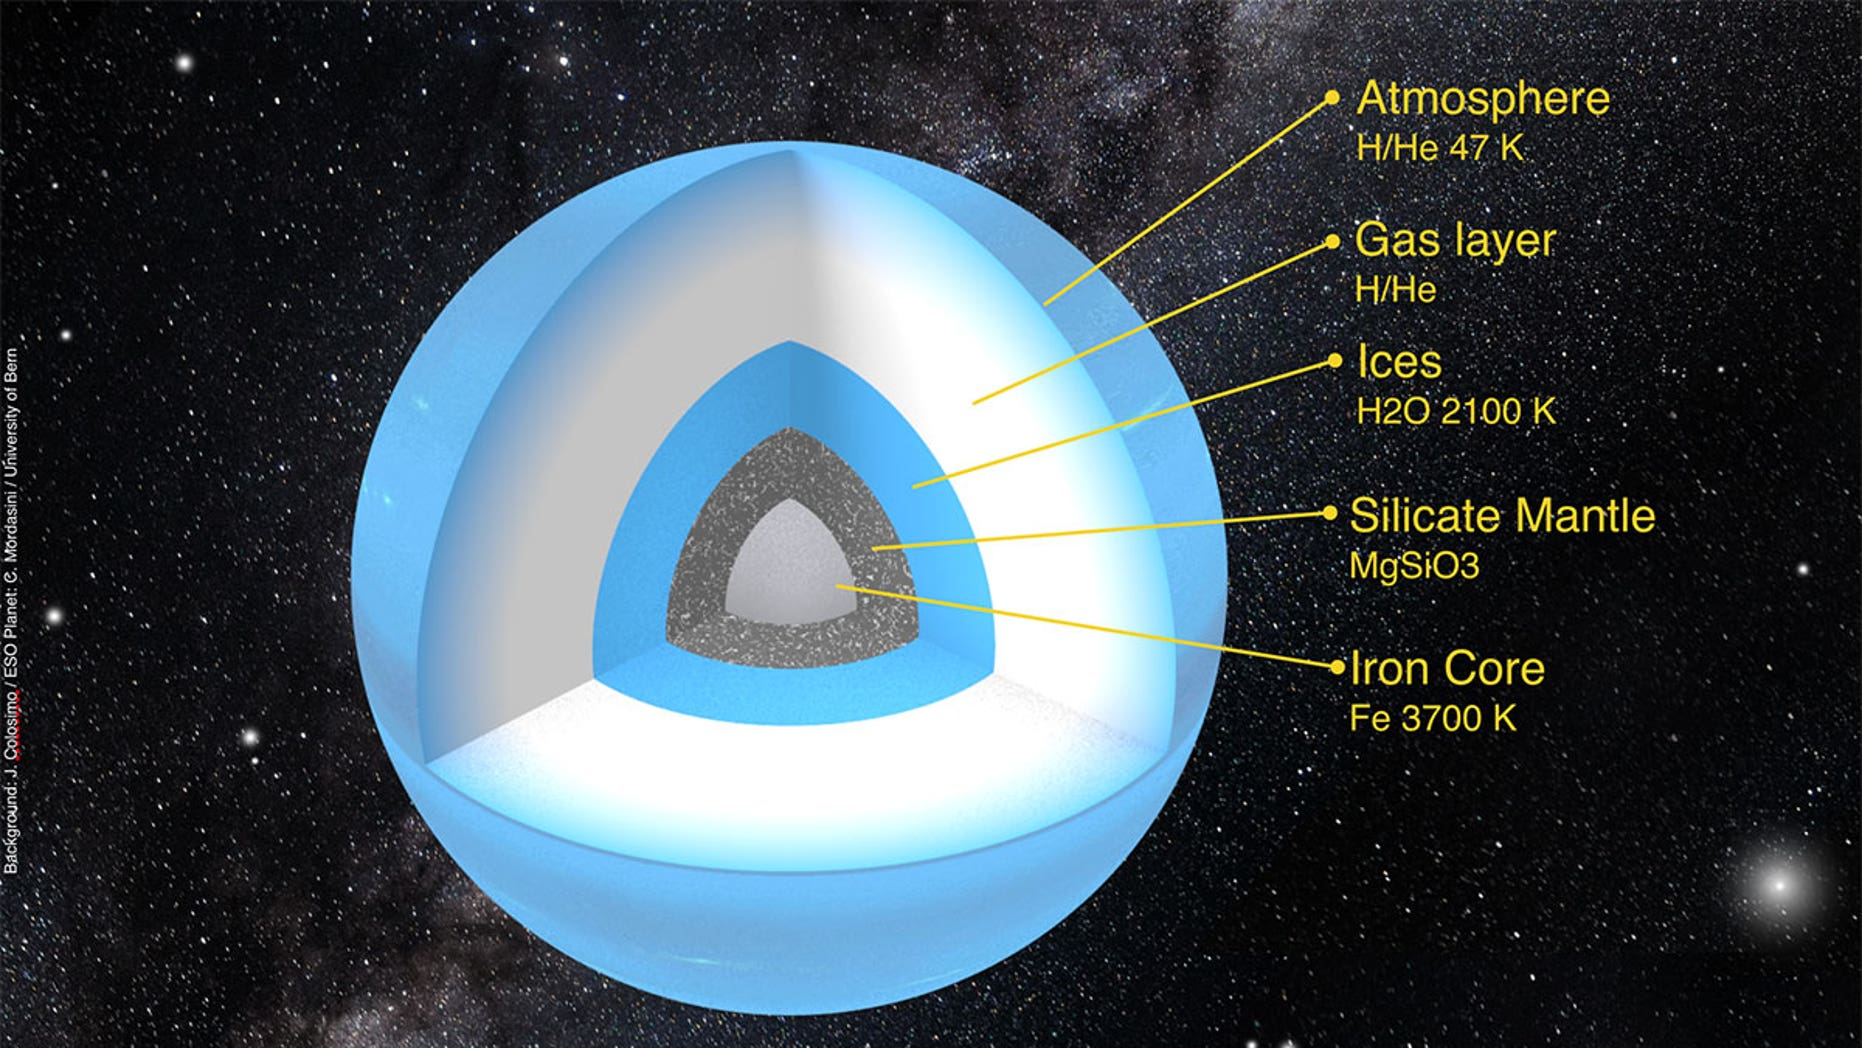 The possible internal structure of Planet Nine, a large world hypothesized to exist far beyond the orbit of Pluto.